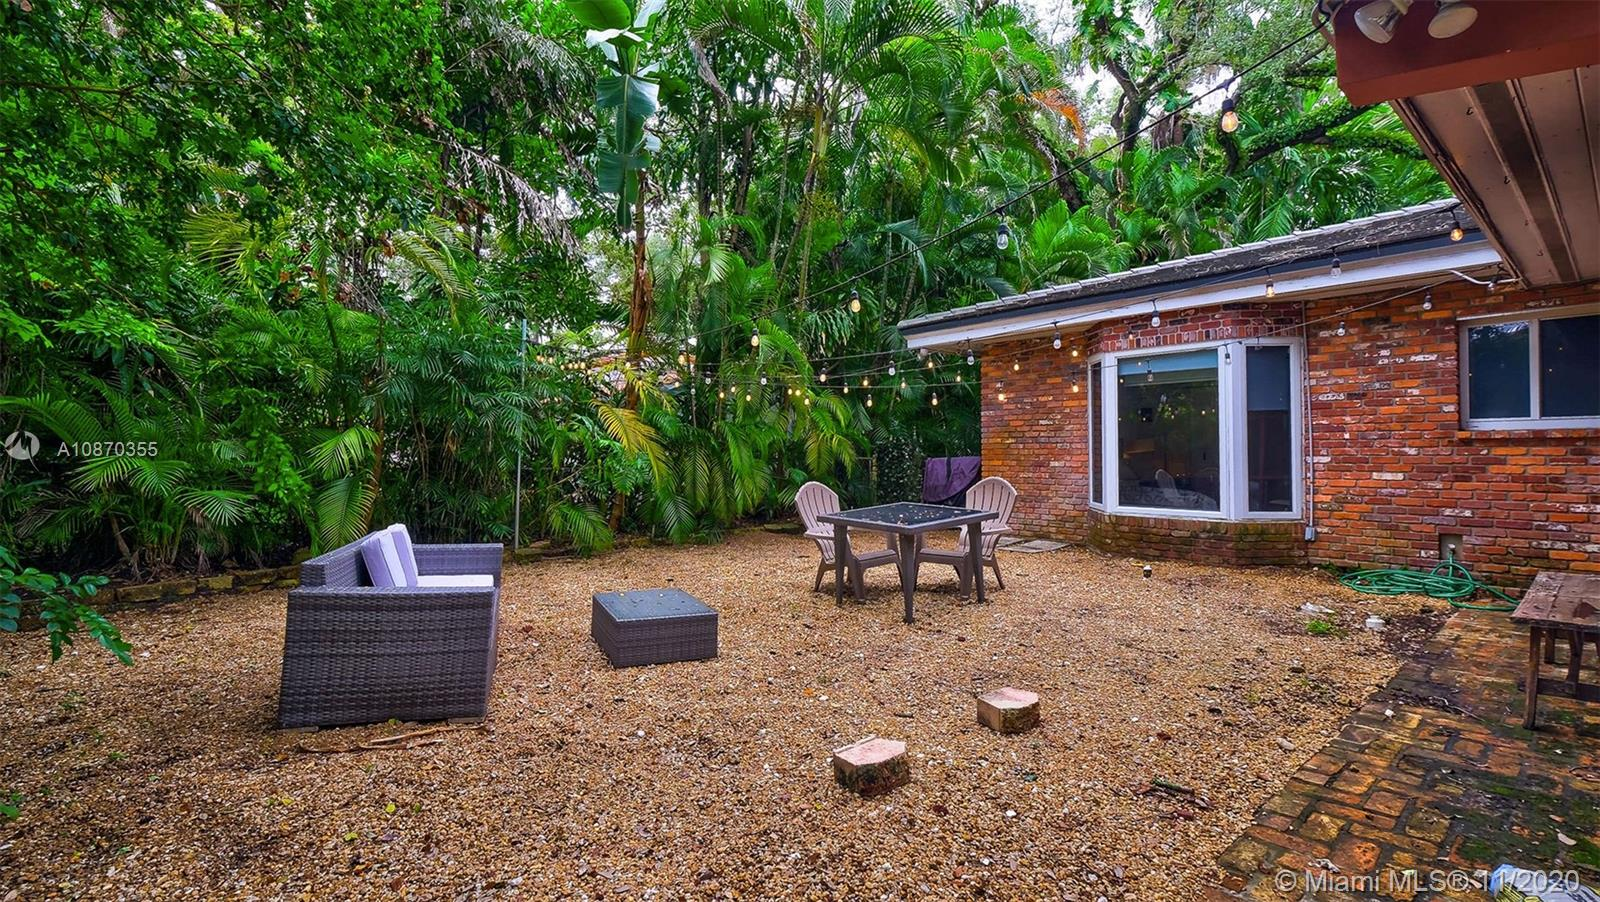 5101 Maggiore St, Coral Gables, Florida 33146, 4 Bedrooms Bedrooms, ,3 BathroomsBathrooms,Residential,For Sale,5101 Maggiore St,A10870355